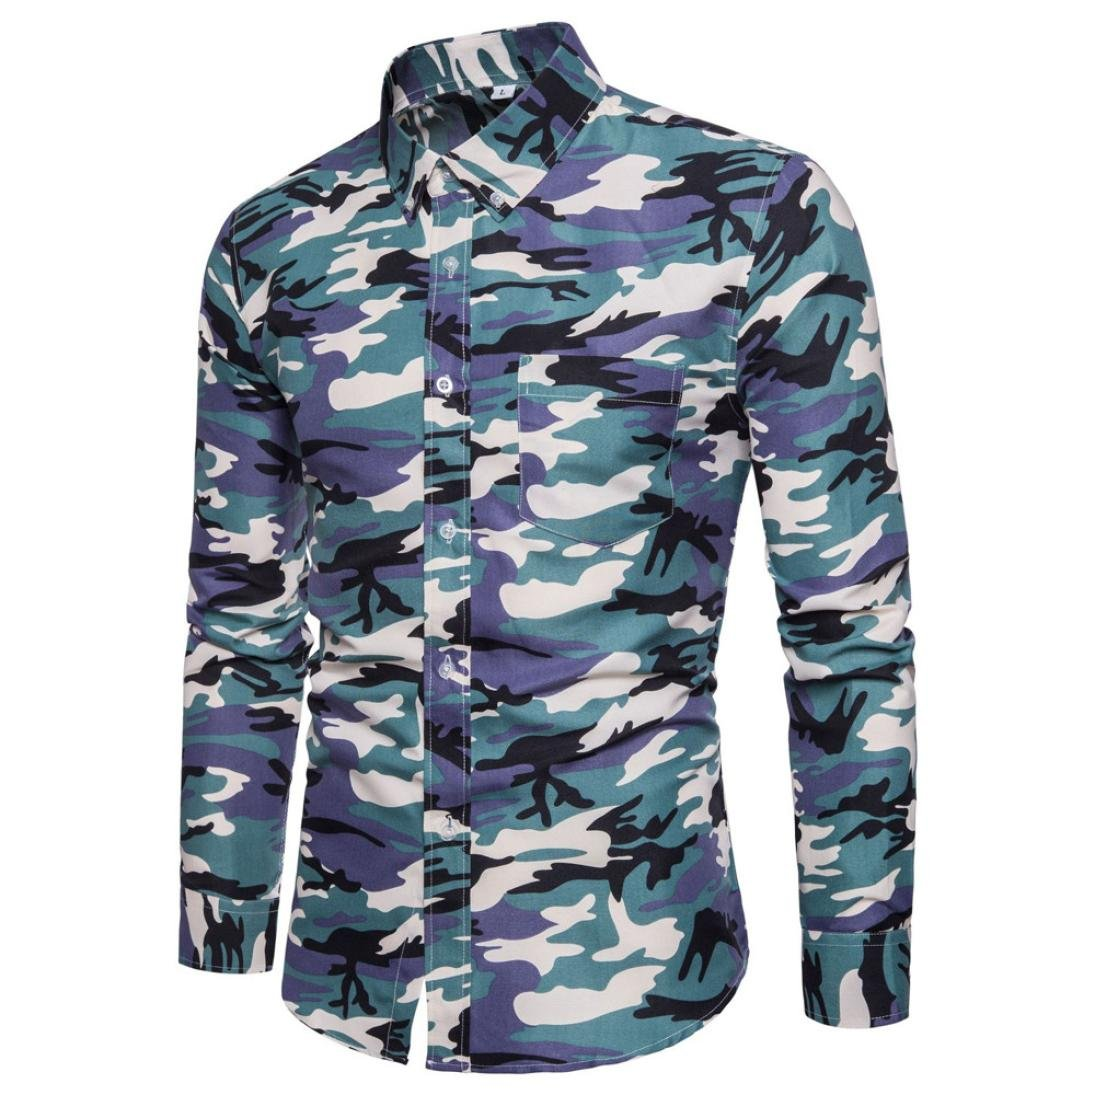 4aaad64b KPILP Men's Casual Camouflage Printing Pullover Long Sleeve T-Shirt Top:  Amazon.co.uk: Clothing